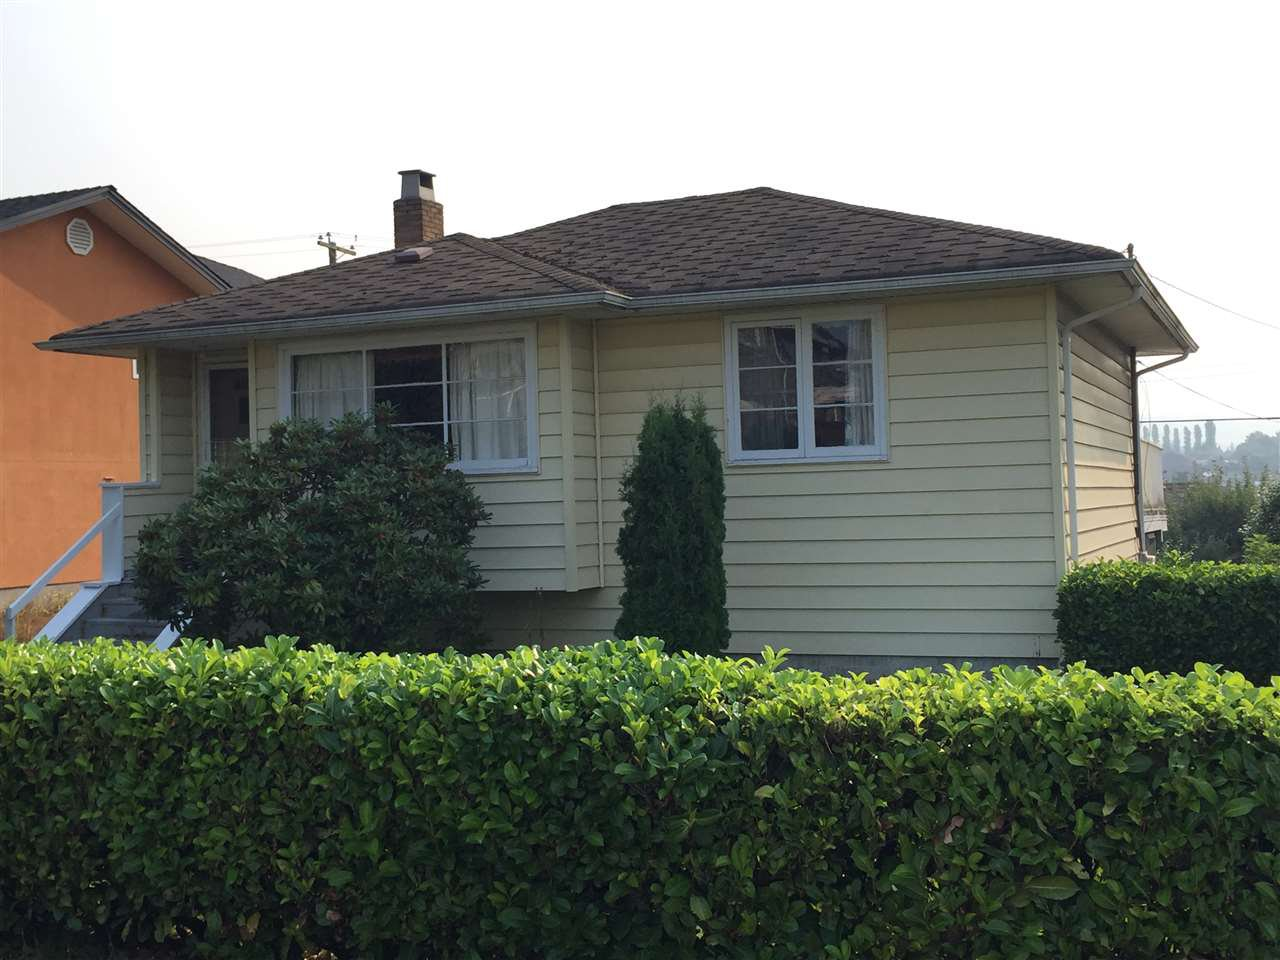 Main Photo: 1558 MADISON Avenue in Burnaby: Willingdon Heights House for sale (Burnaby North)  : MLS®# R2298399